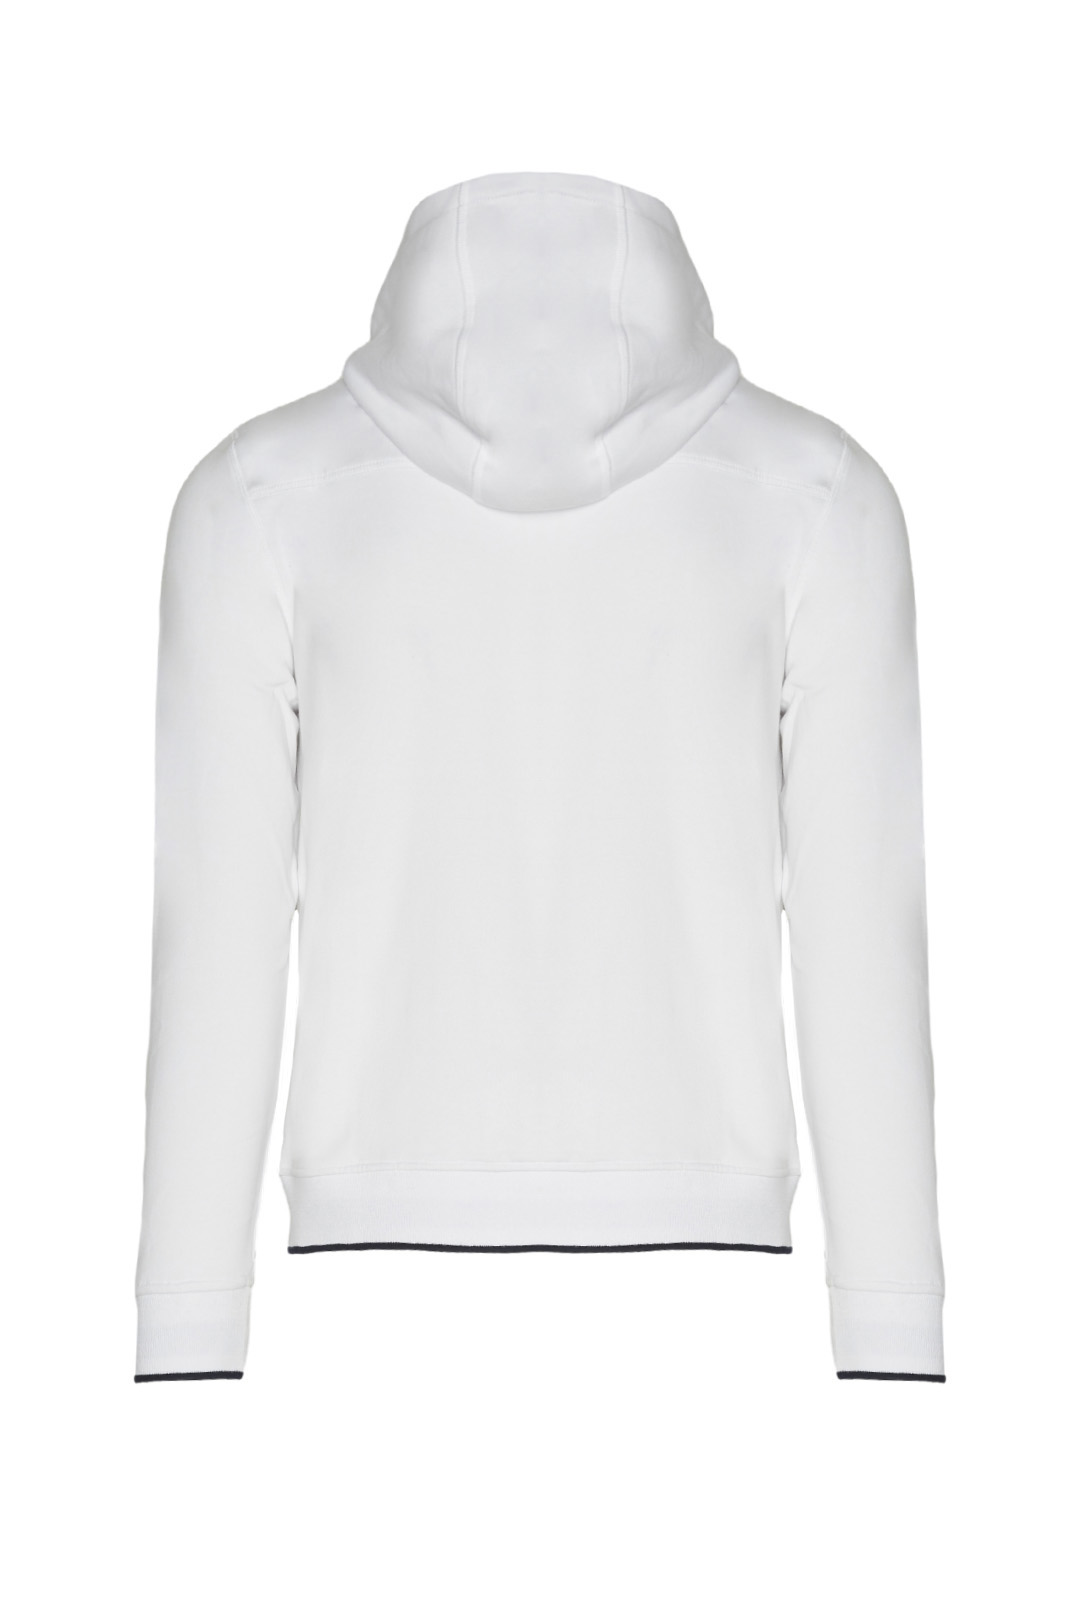 Iconic gauzed cotton AM hoodie           2